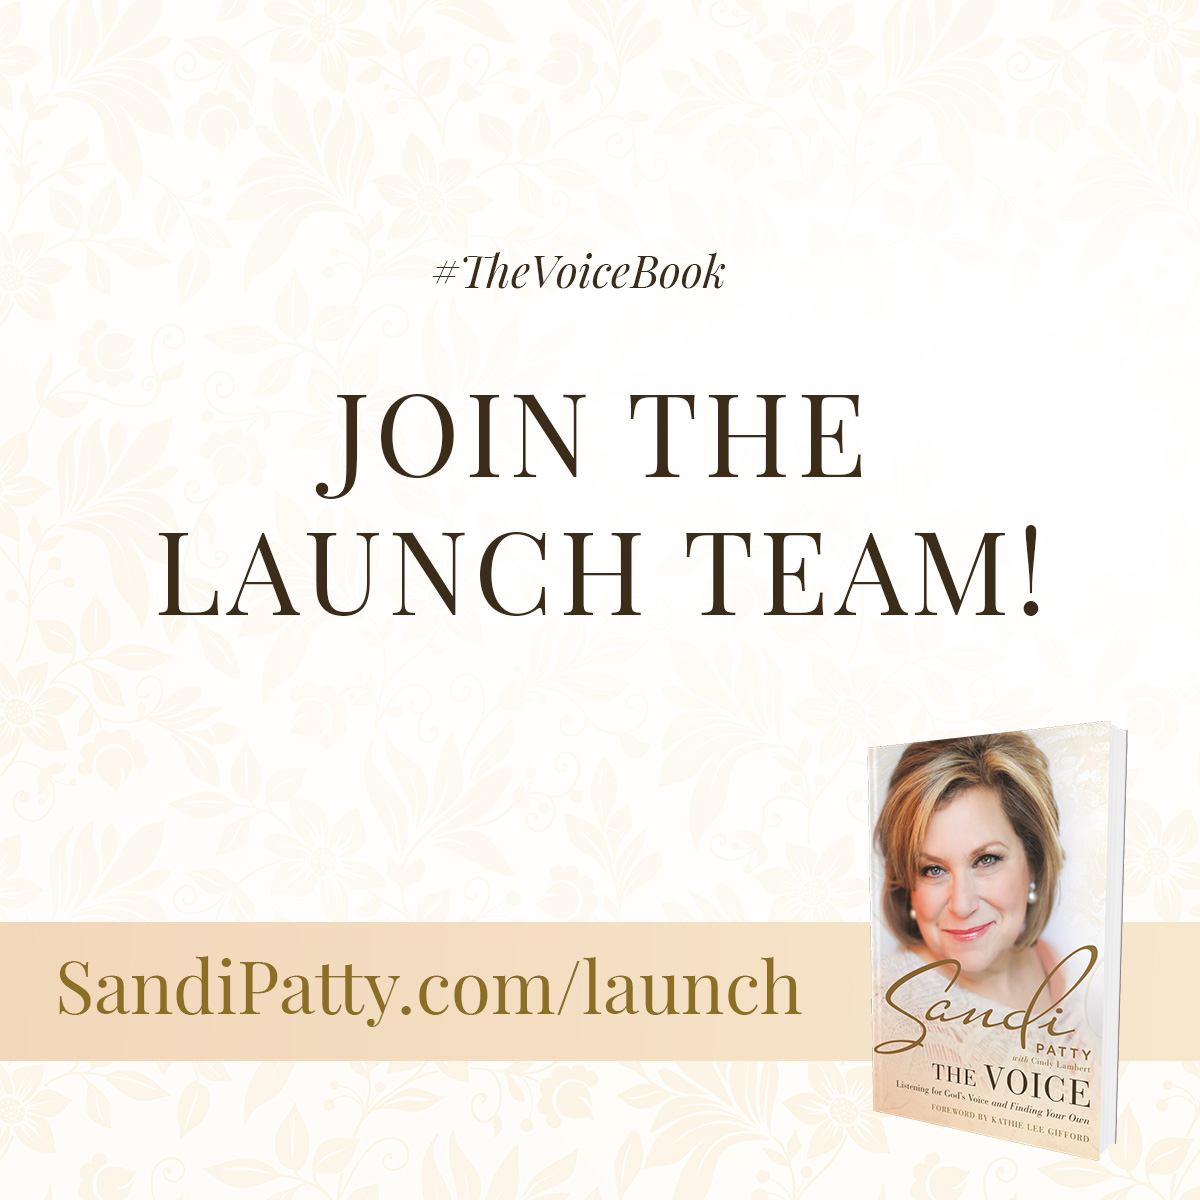 sandi-fb-cover-launchteam-social.jpg